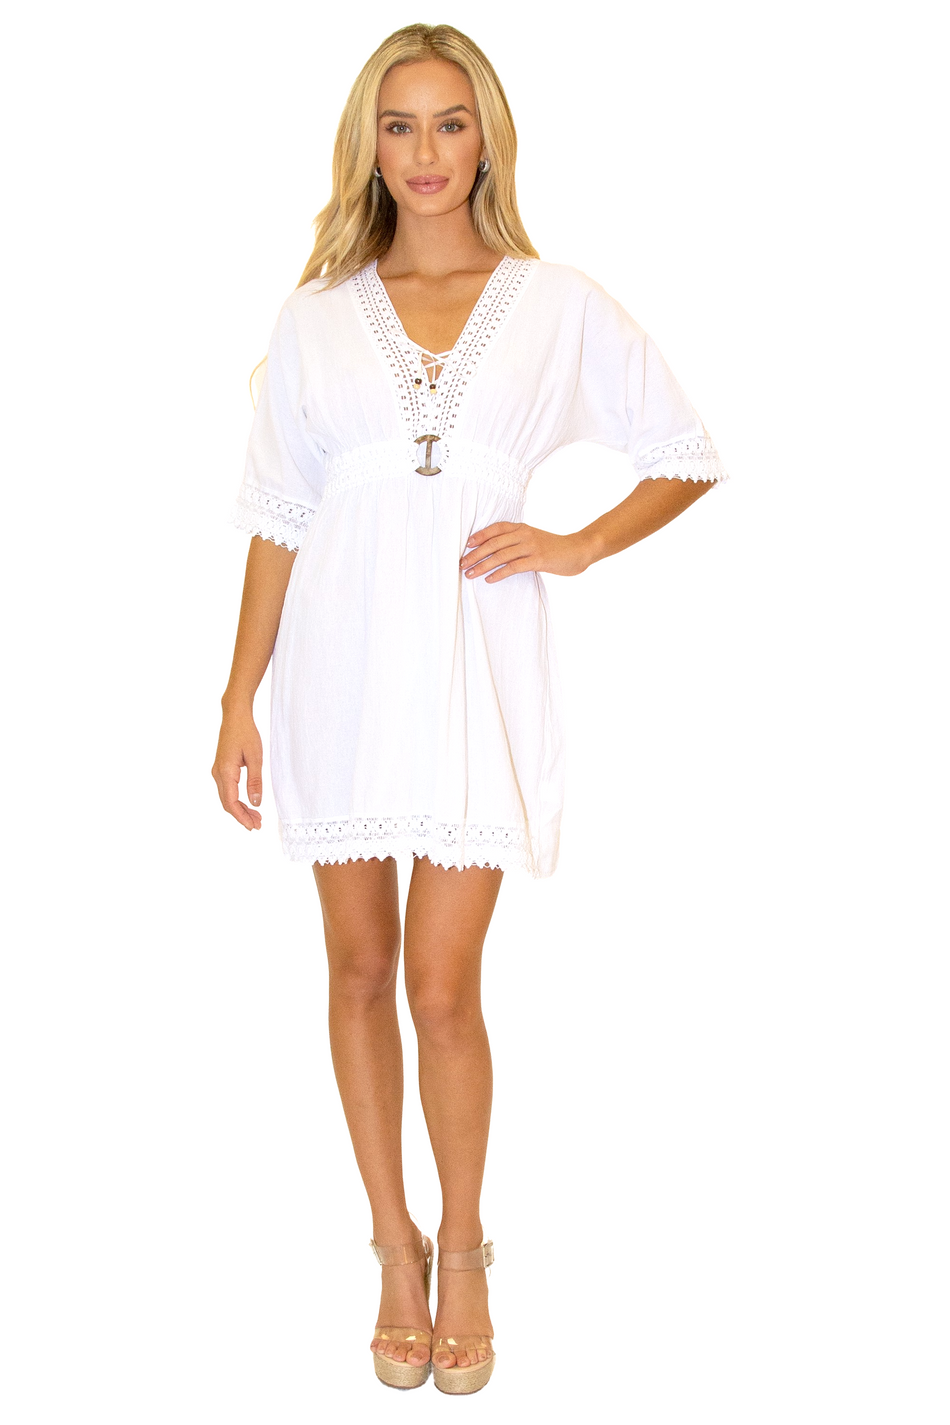 NW1148 - White Cotton Cover-Up